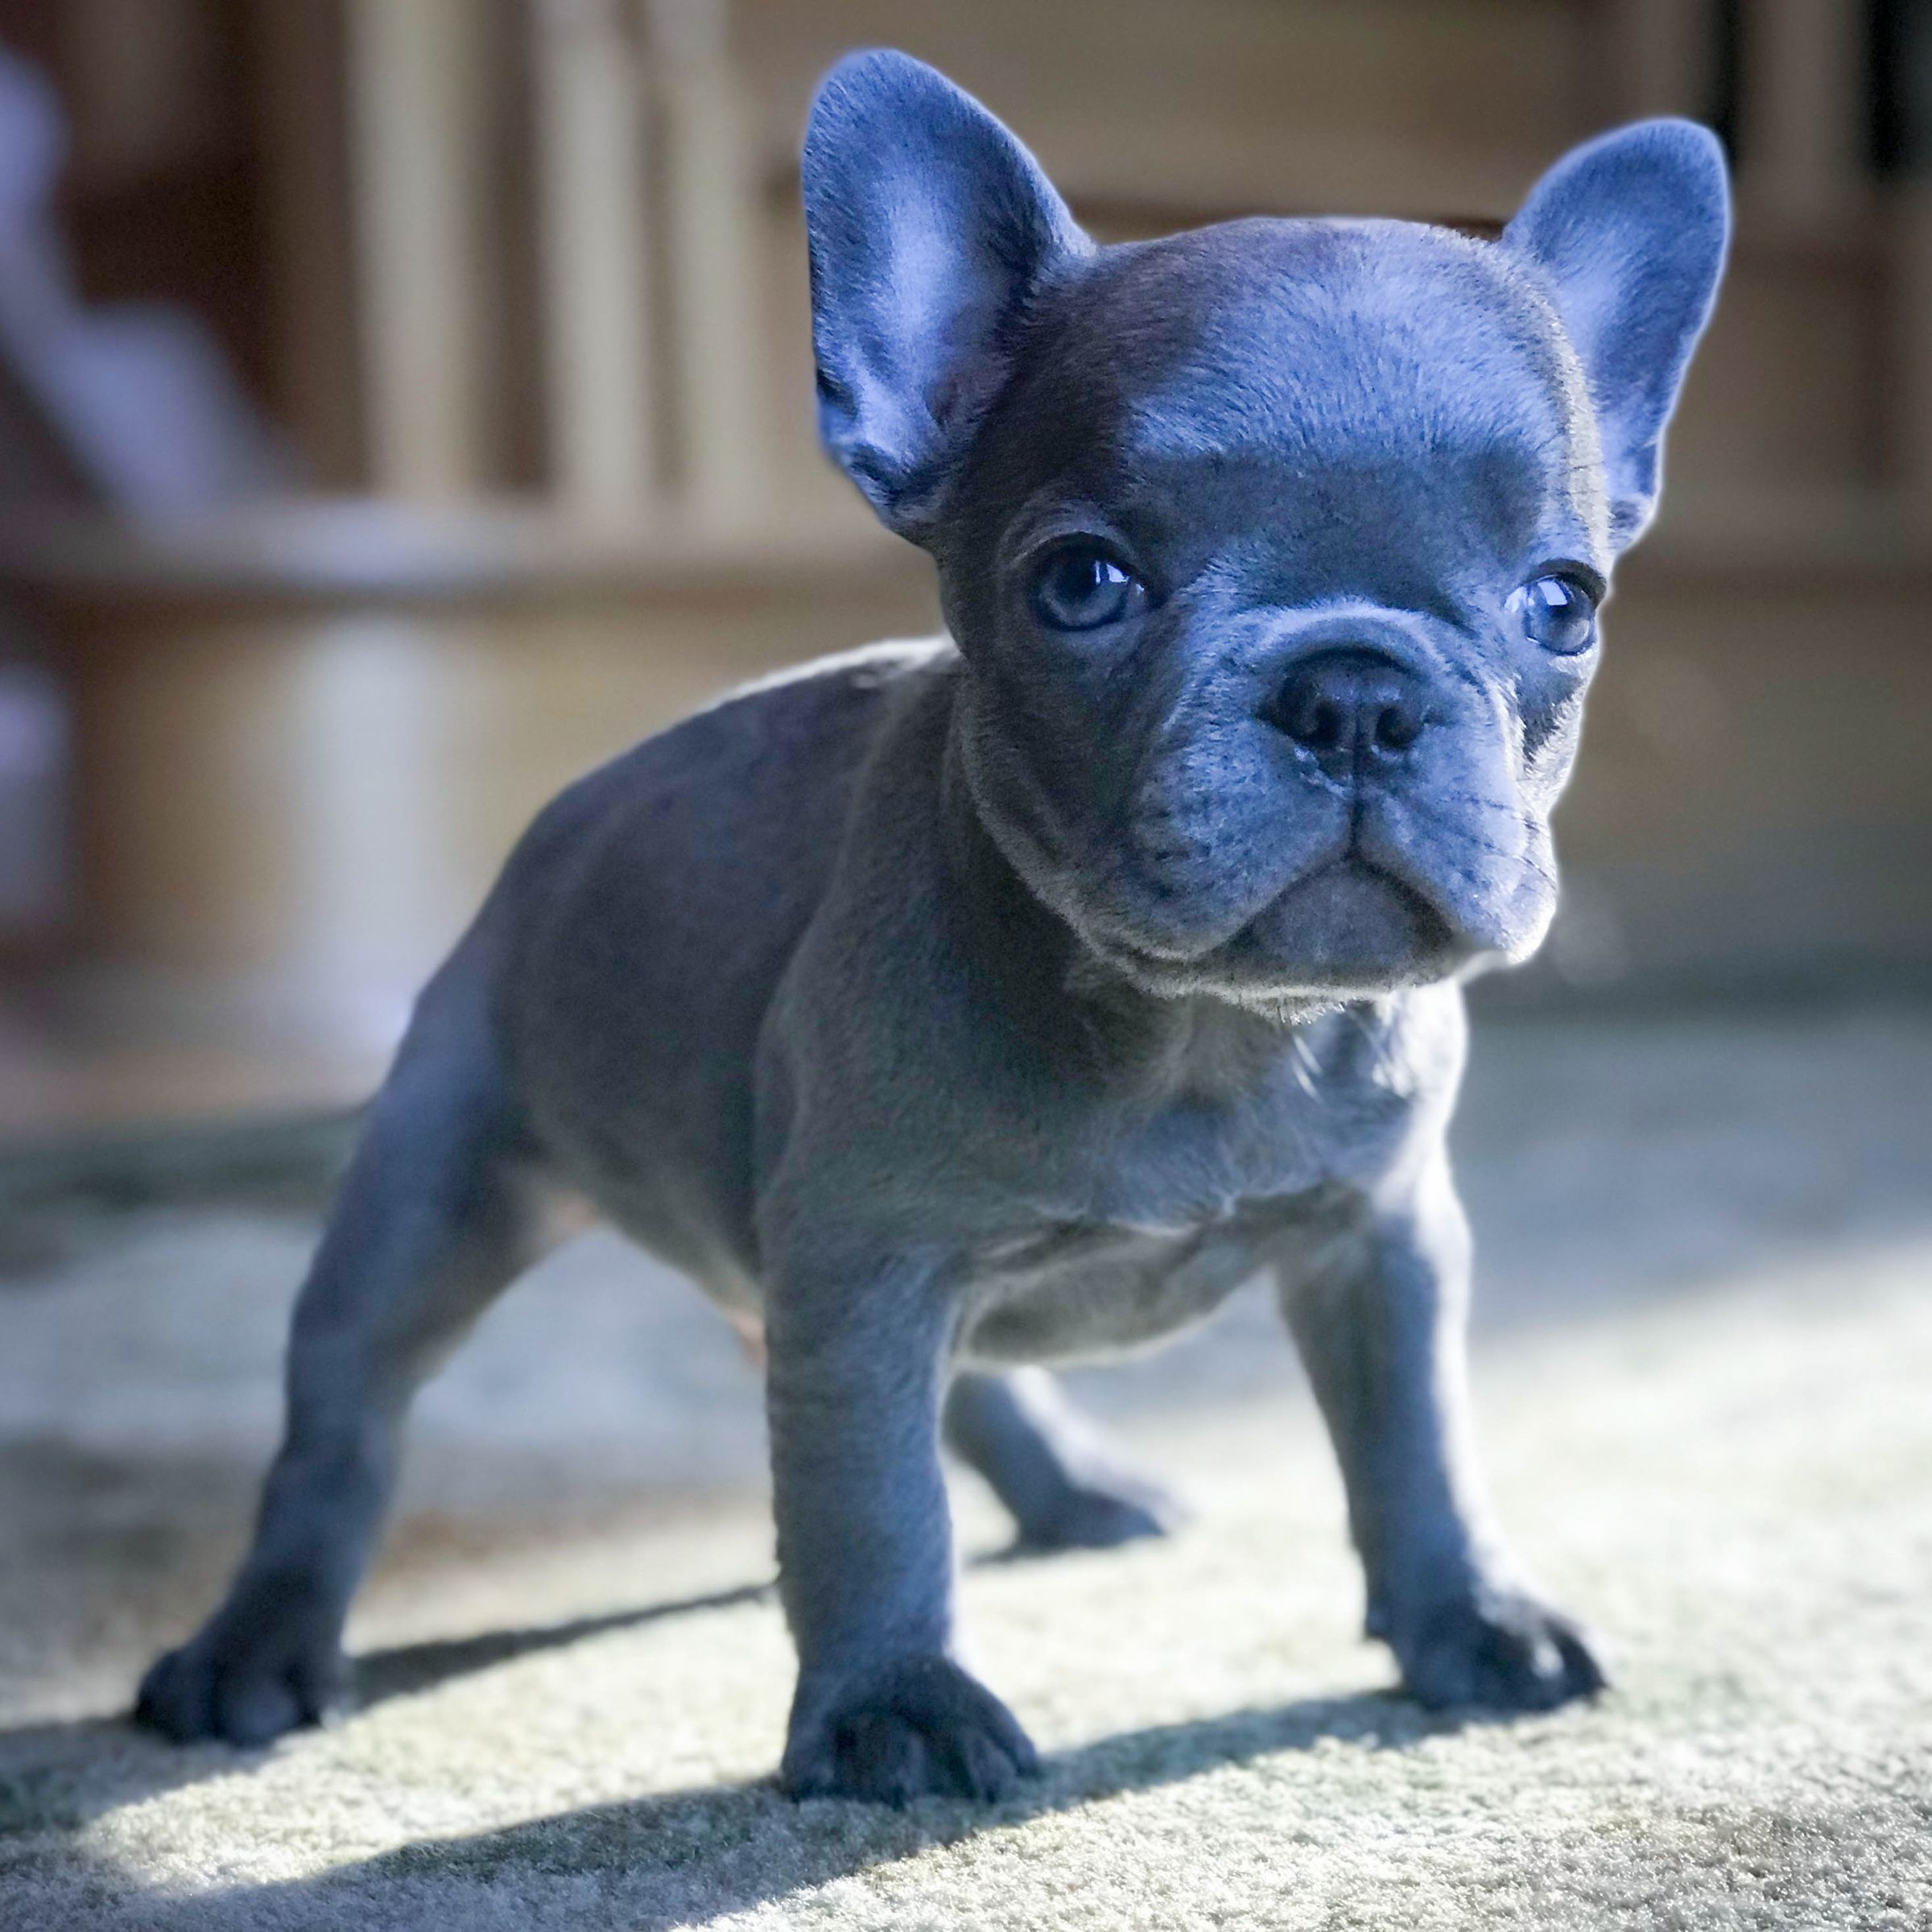 ozzy - periwinkle blue french bulldog puppy | lilac french